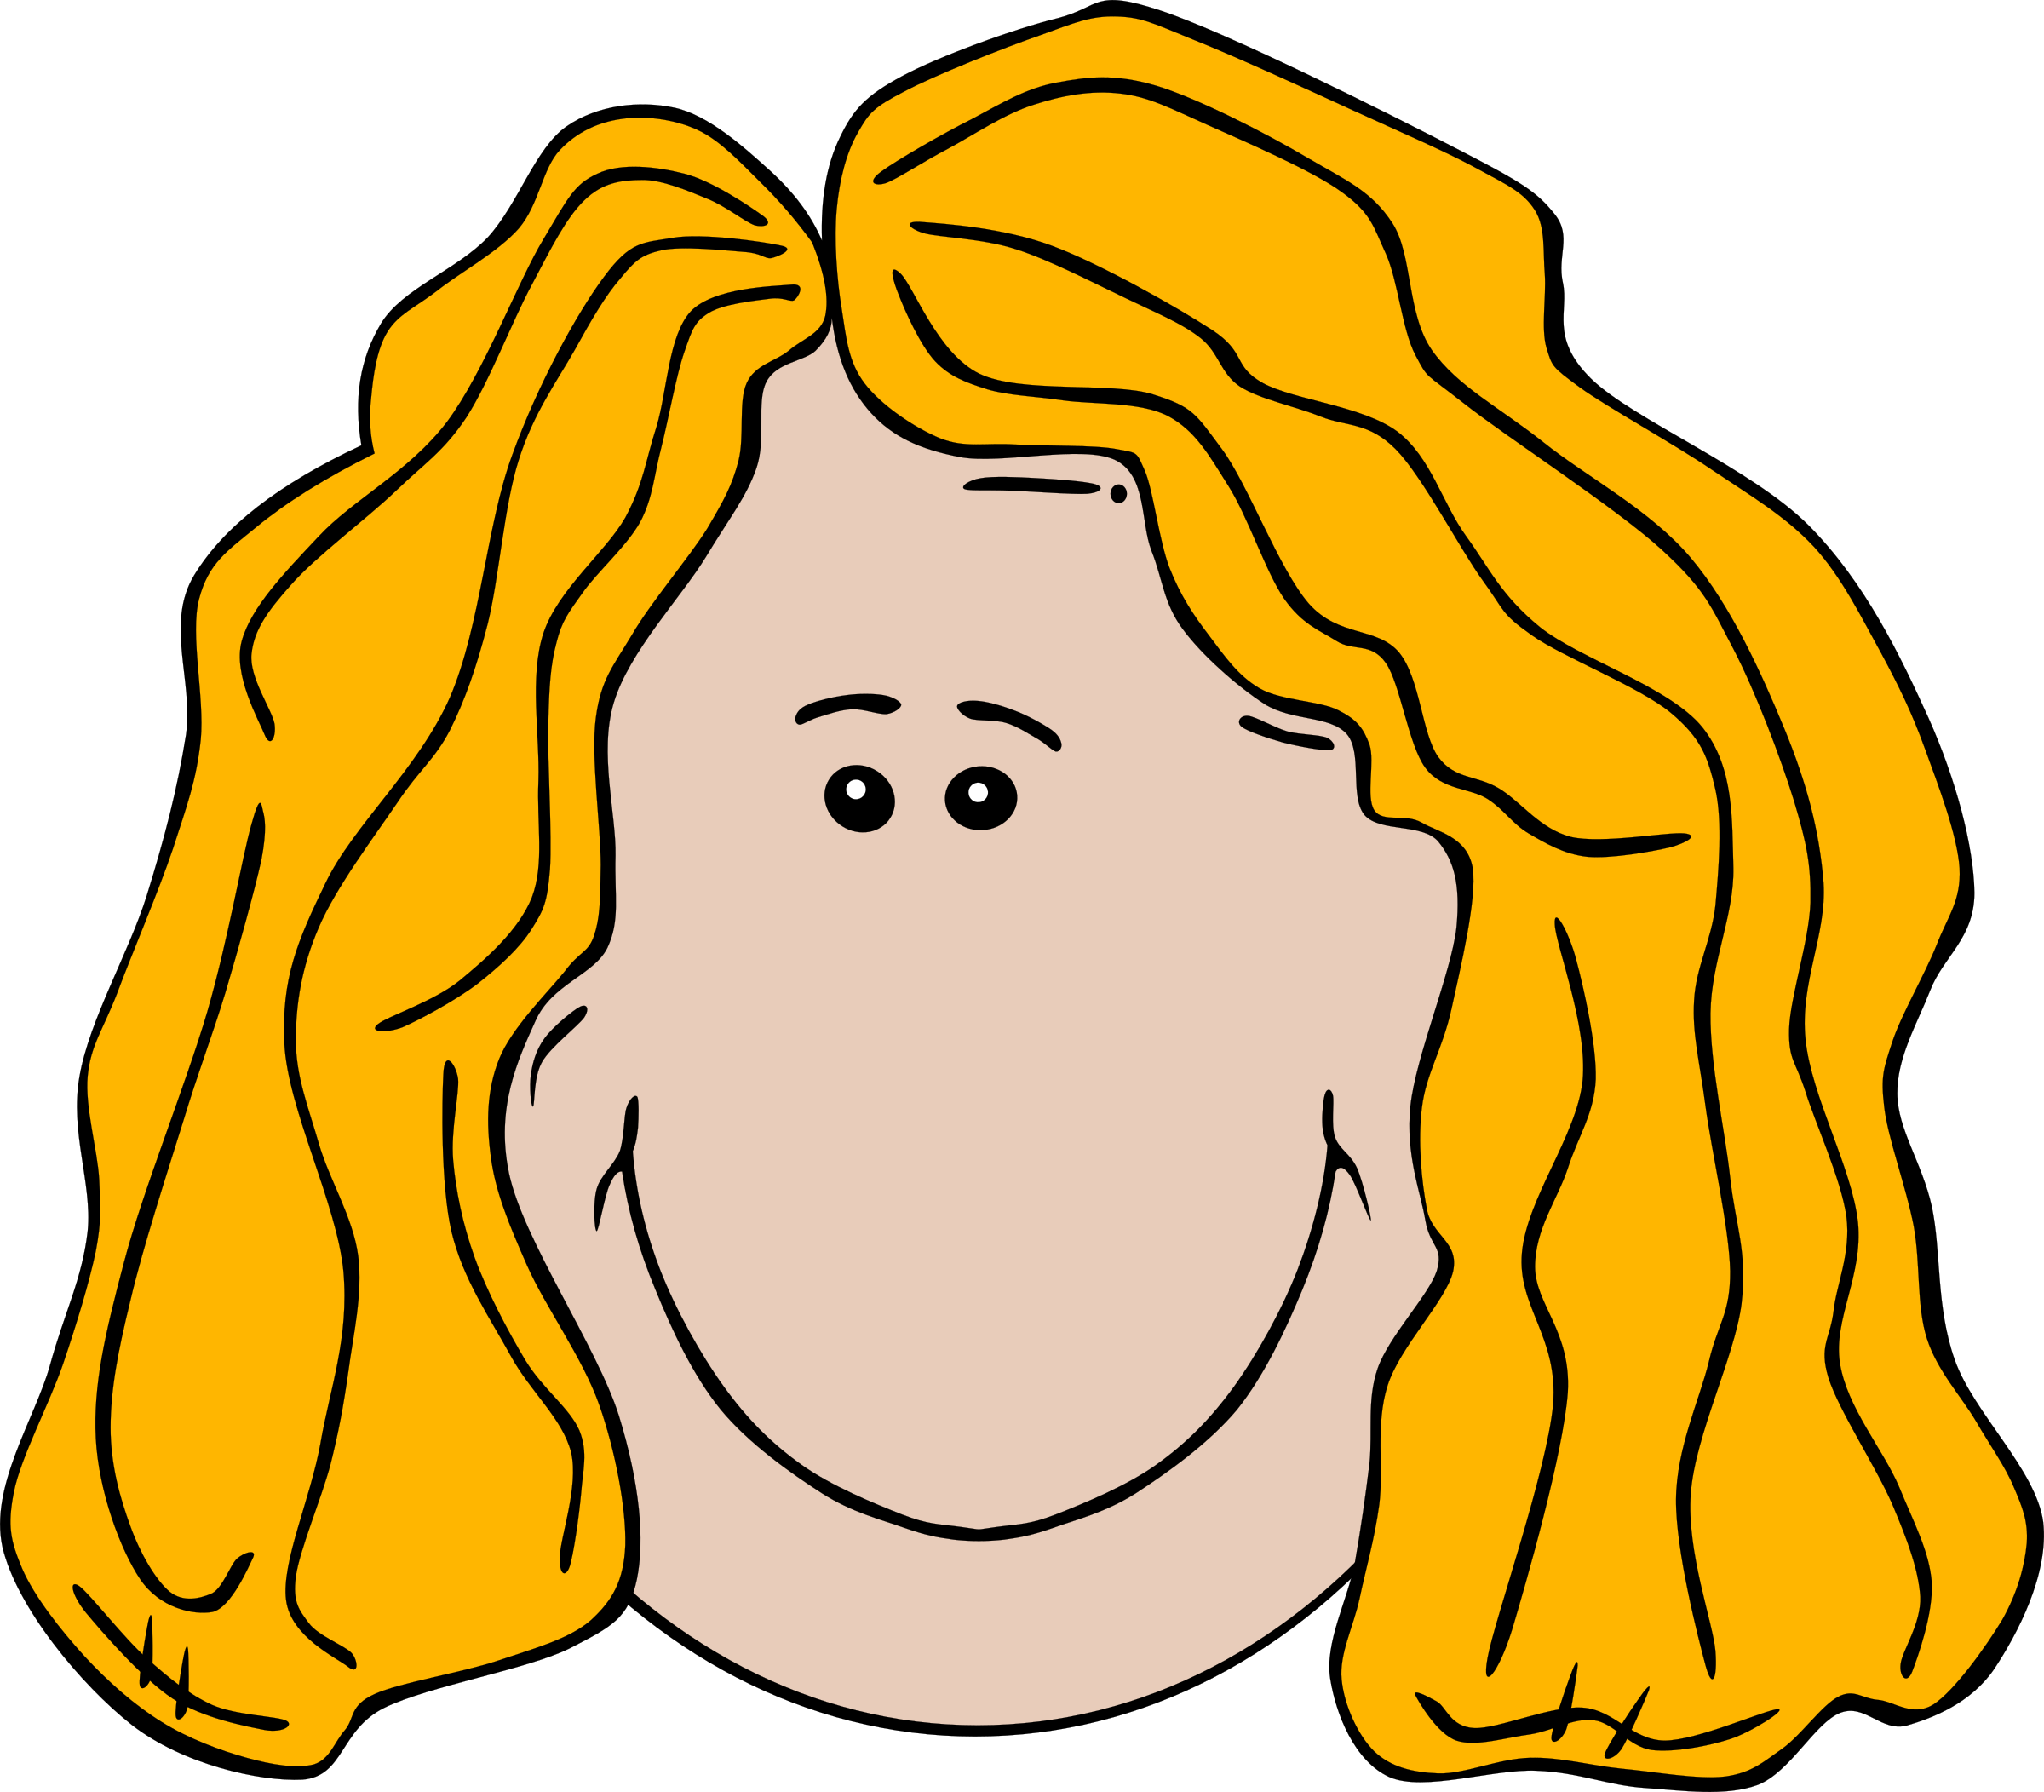 Lady Face Cartoon by Gerald_G